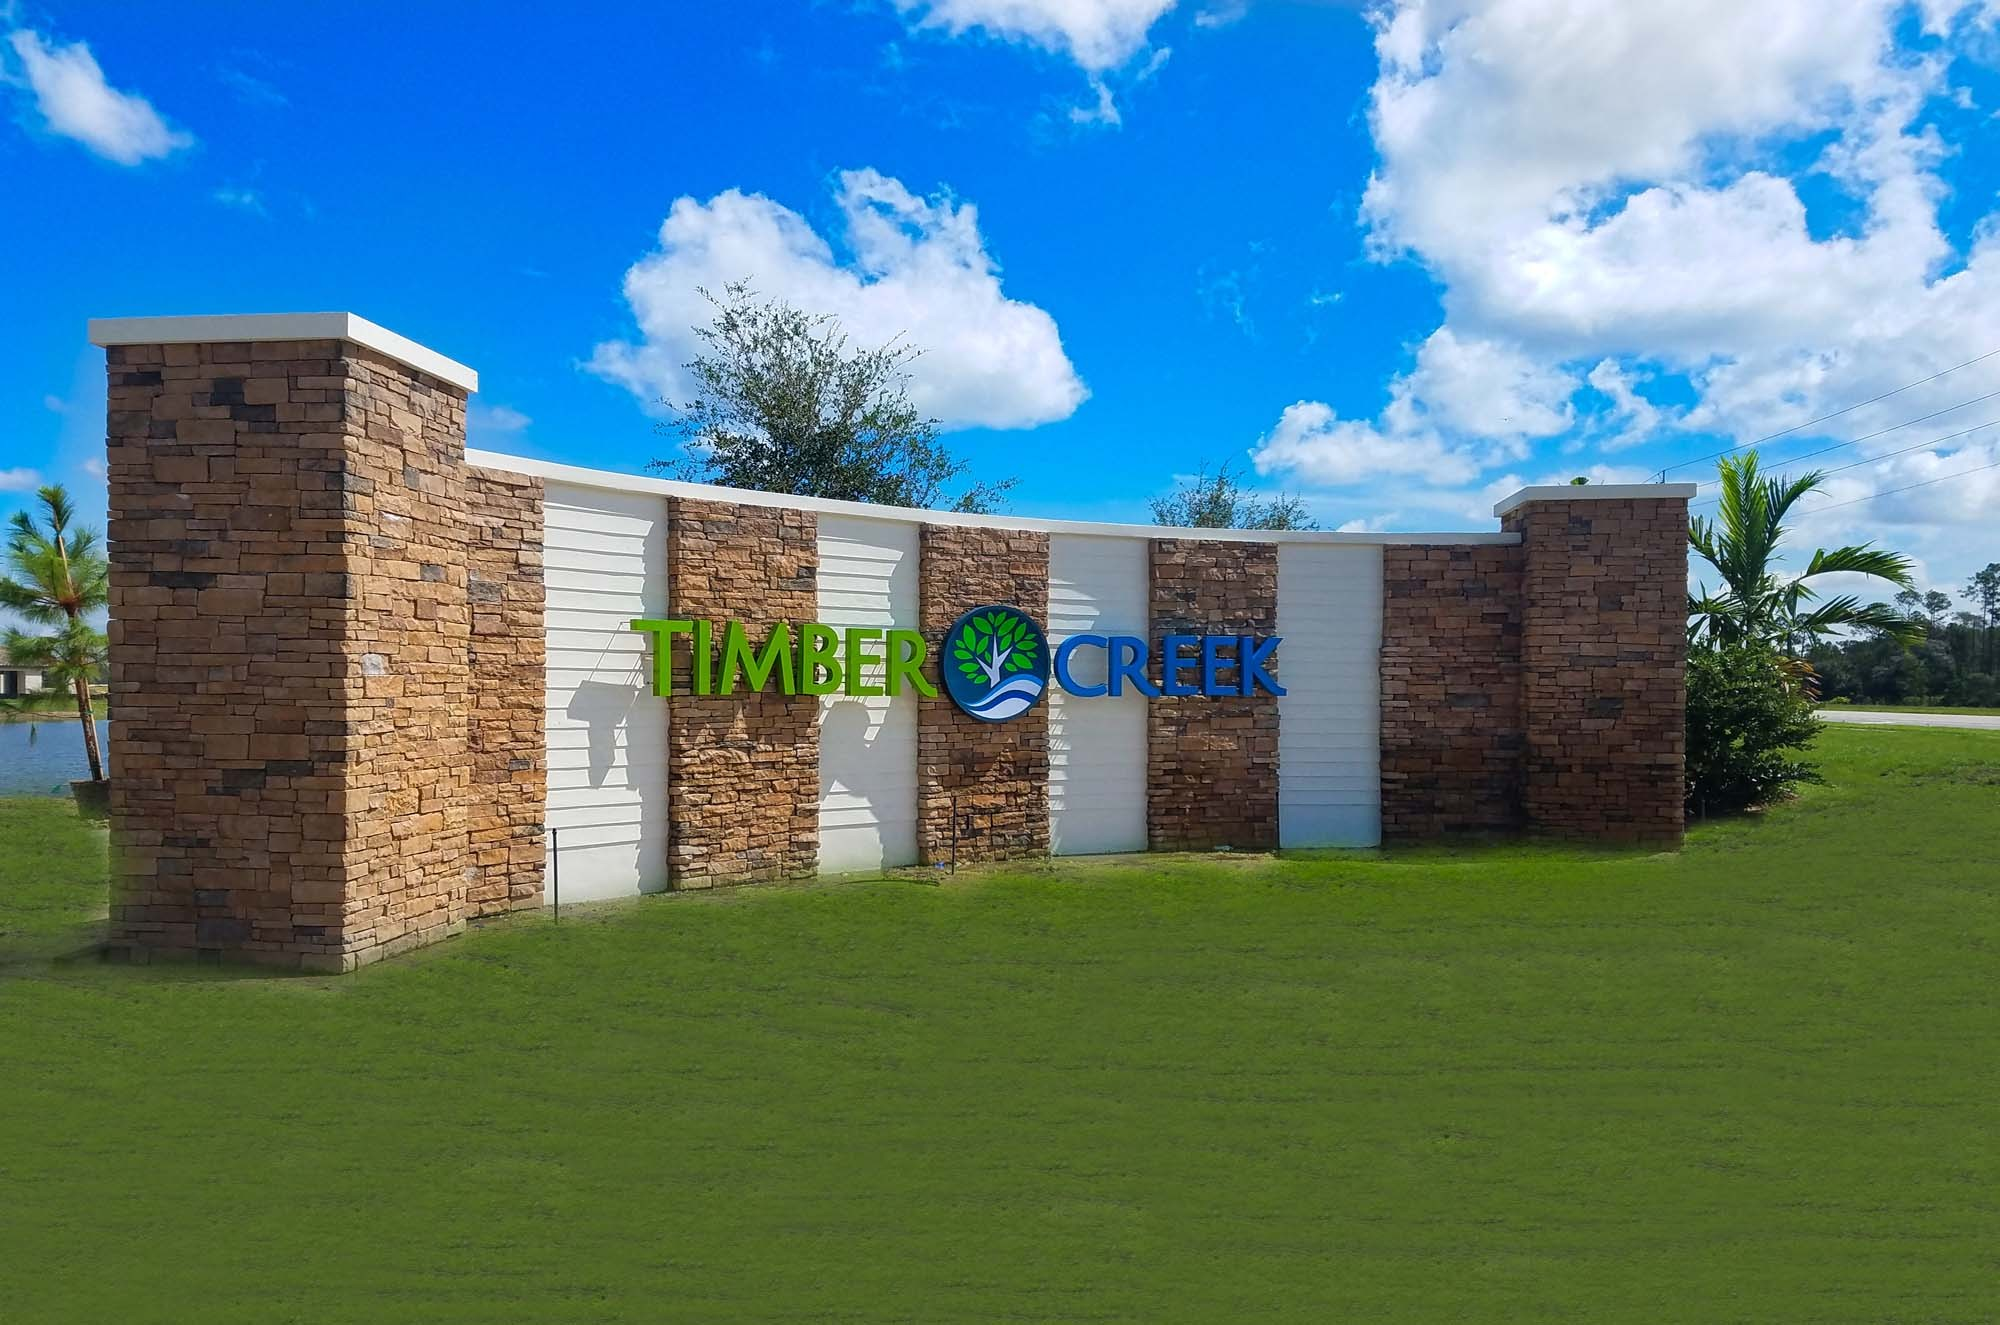 New Community of Timber Creek